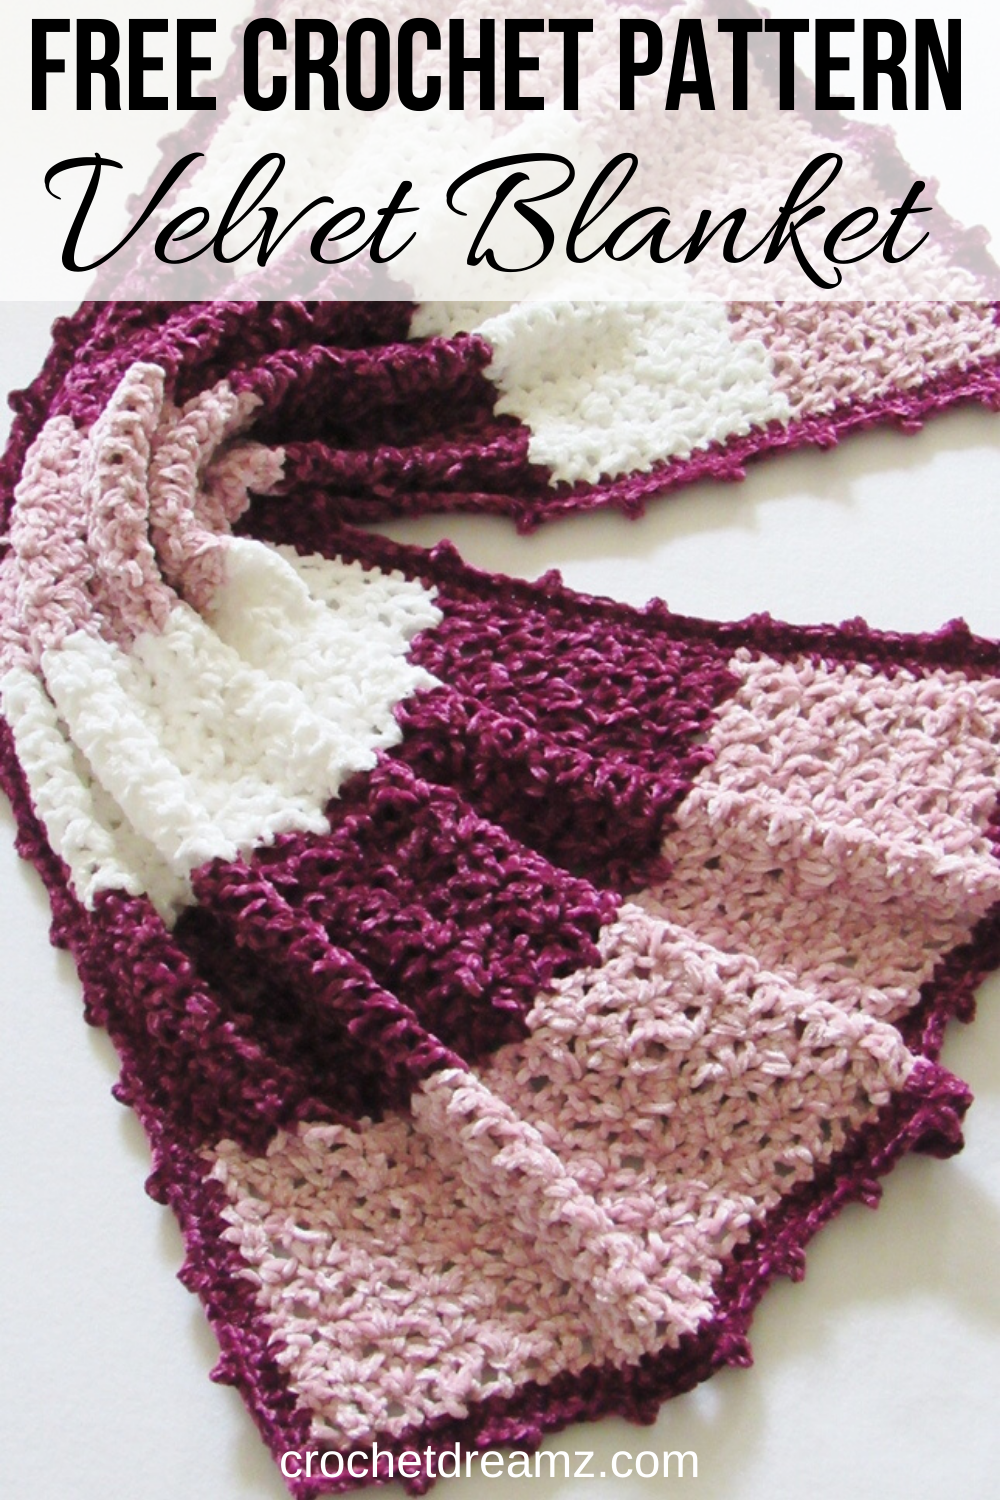 Easy Crochet Blanket Pattern (Velvet Yarn)